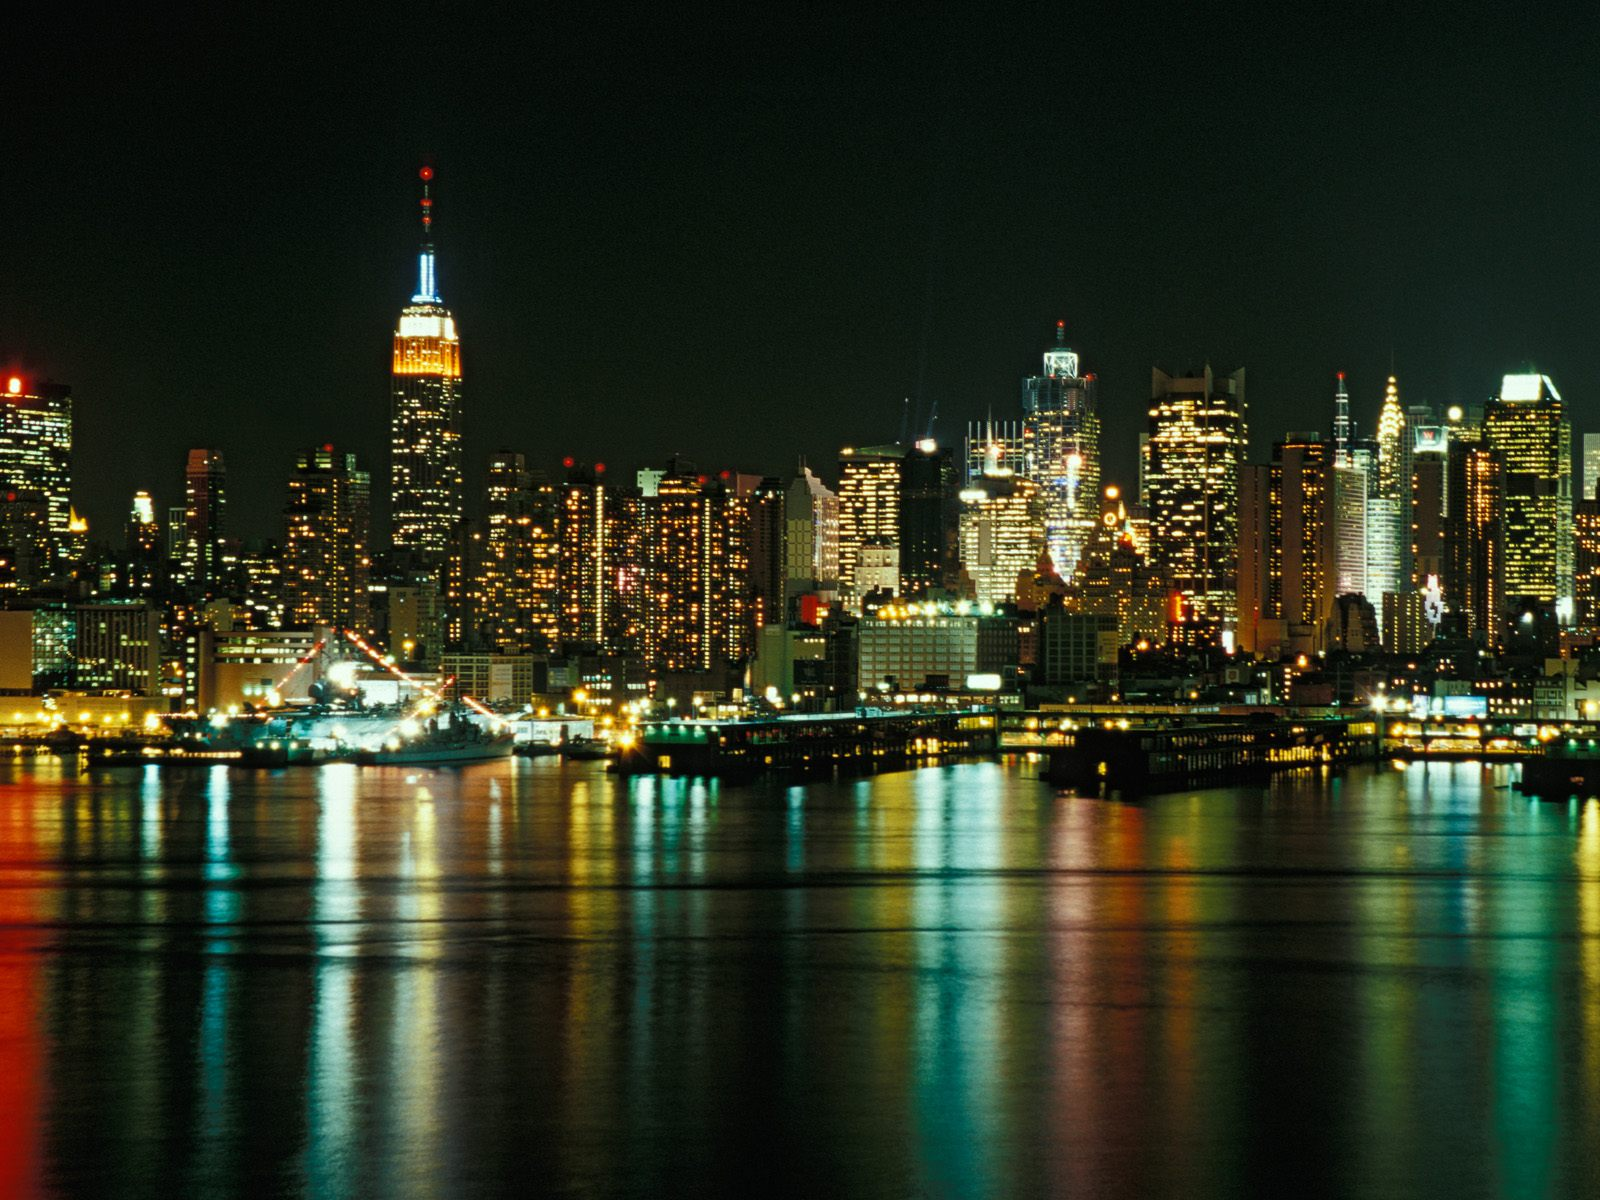 Beautful pc wallpapers usa city wallpaper p2 for Places to see in nyc at night